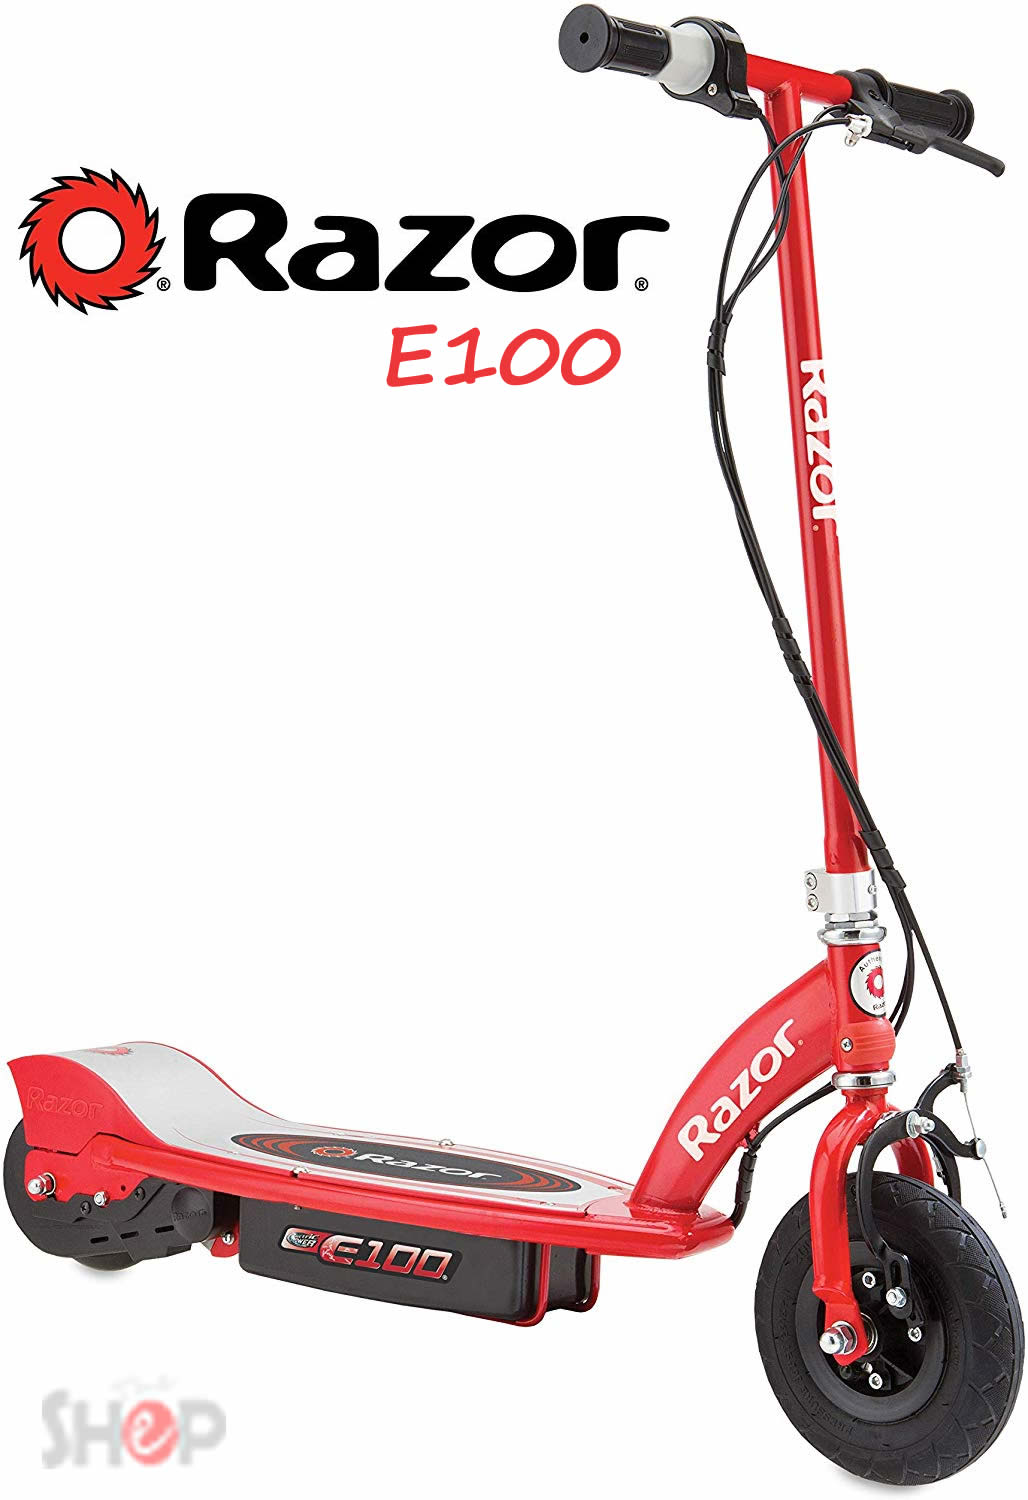 Razor E100 Electric Scooter for Kids Review